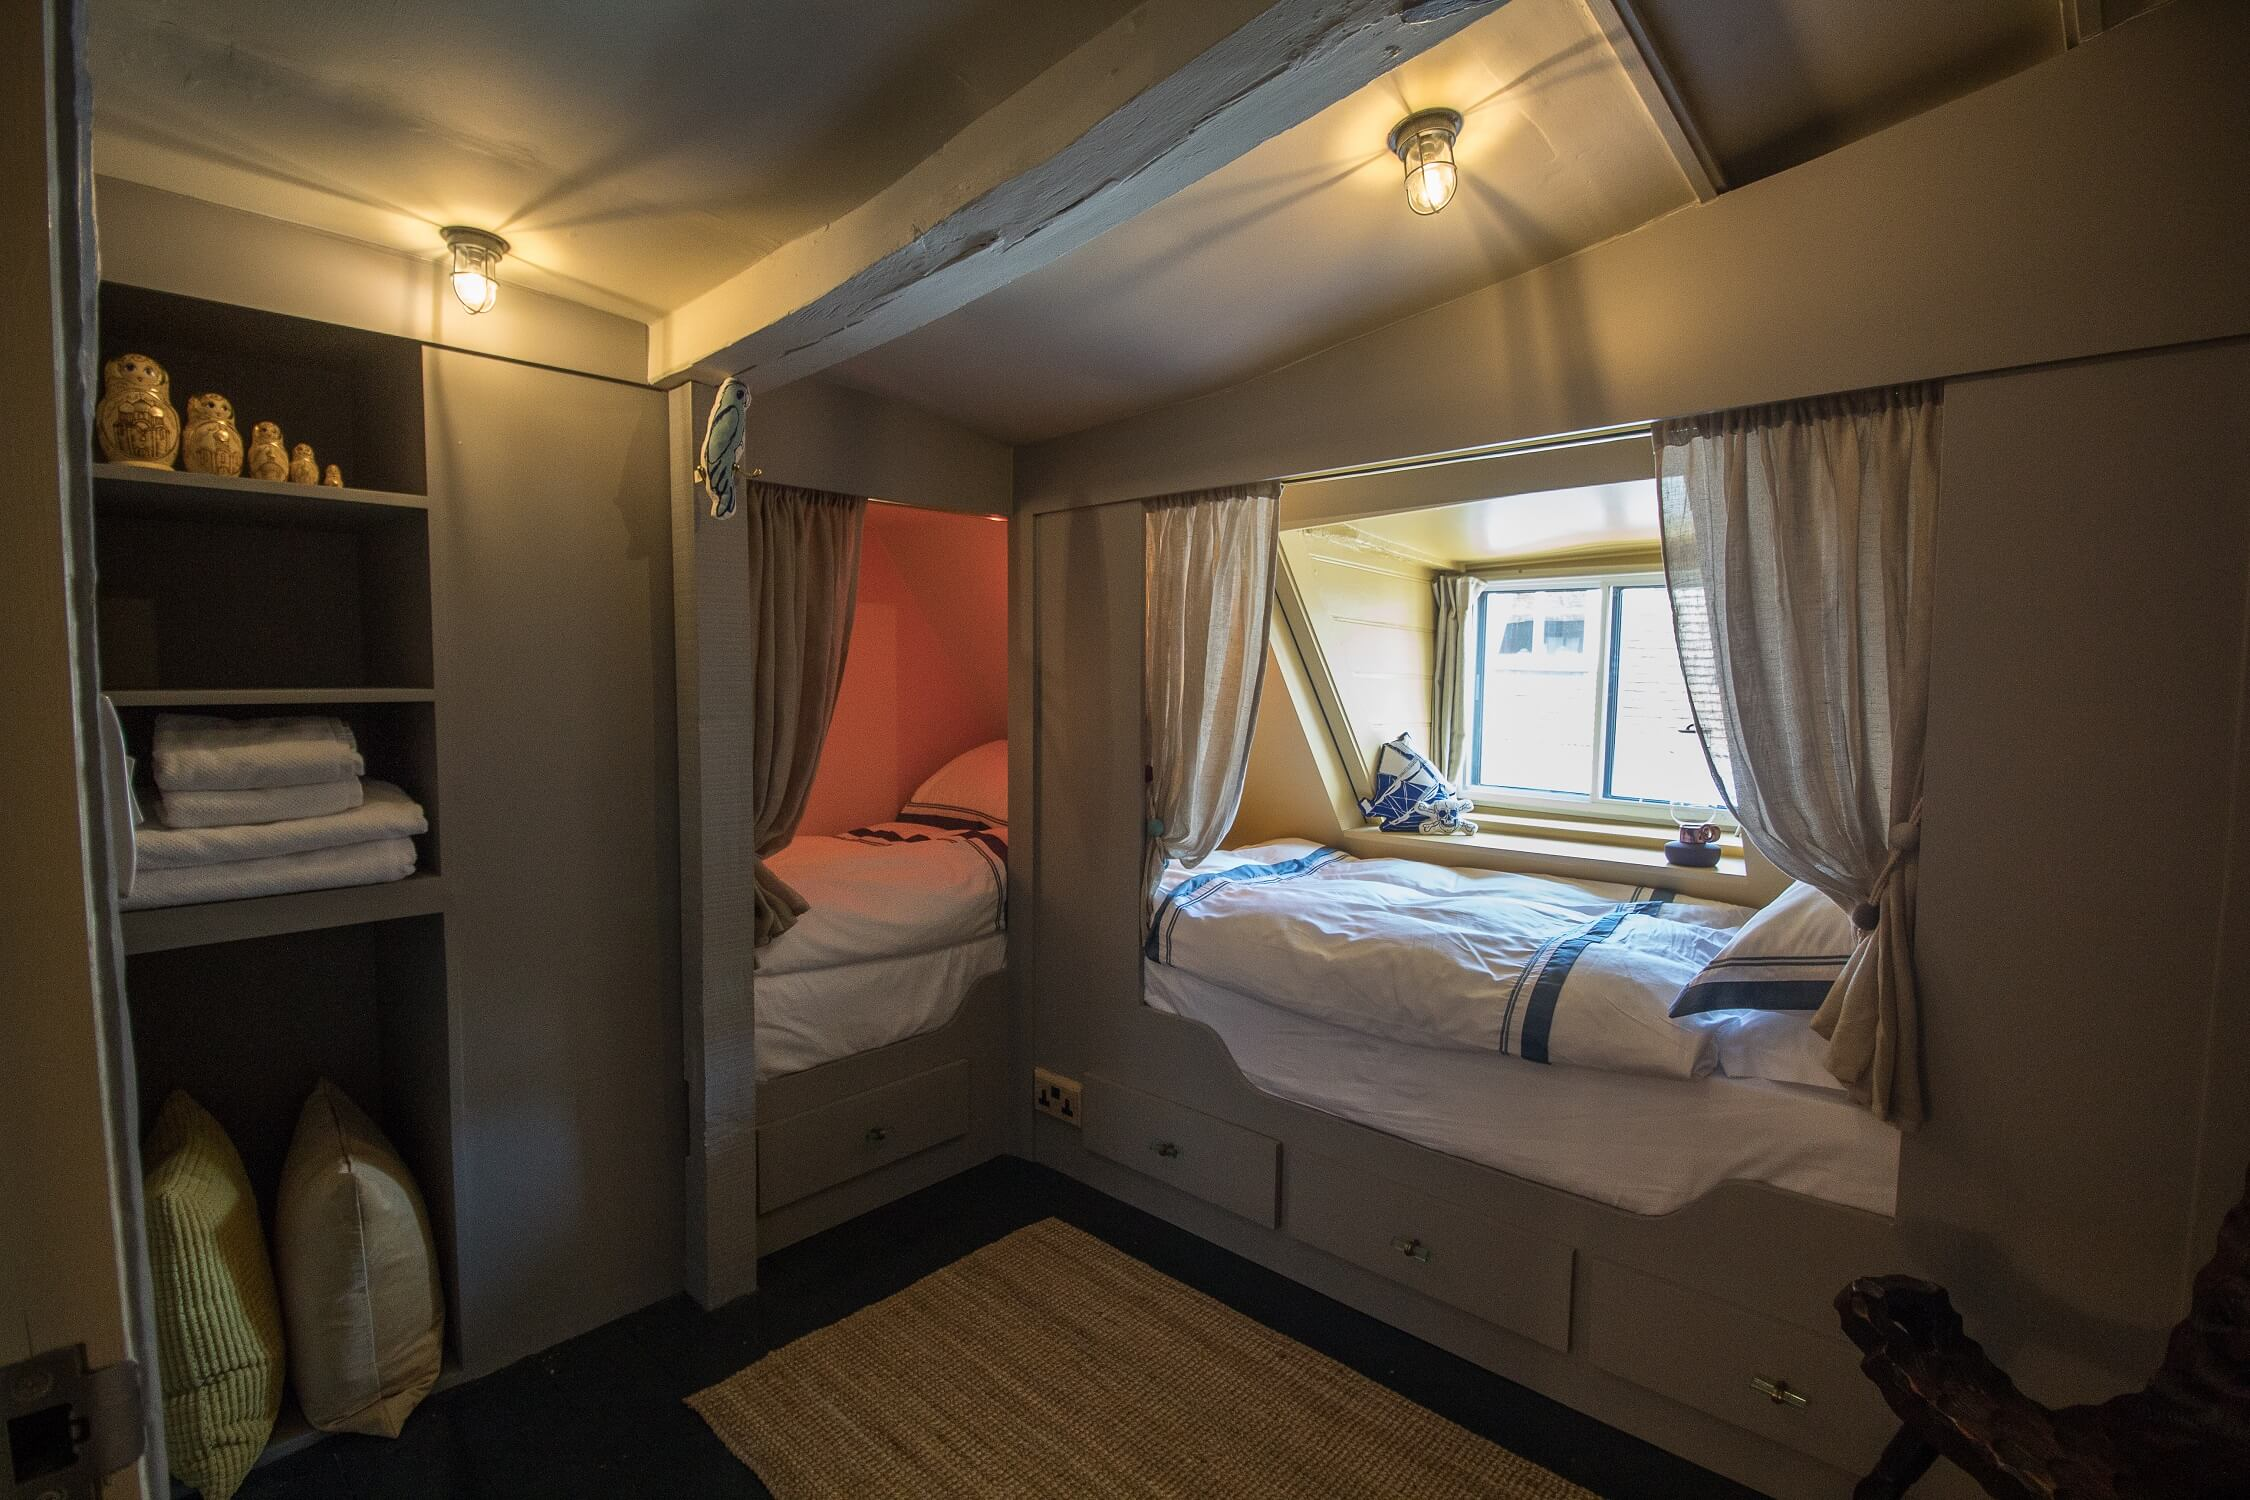 The Crow's Nest Rye - 2 full sized cabin beds for perfect family friendly getaway. Dog friendly too.